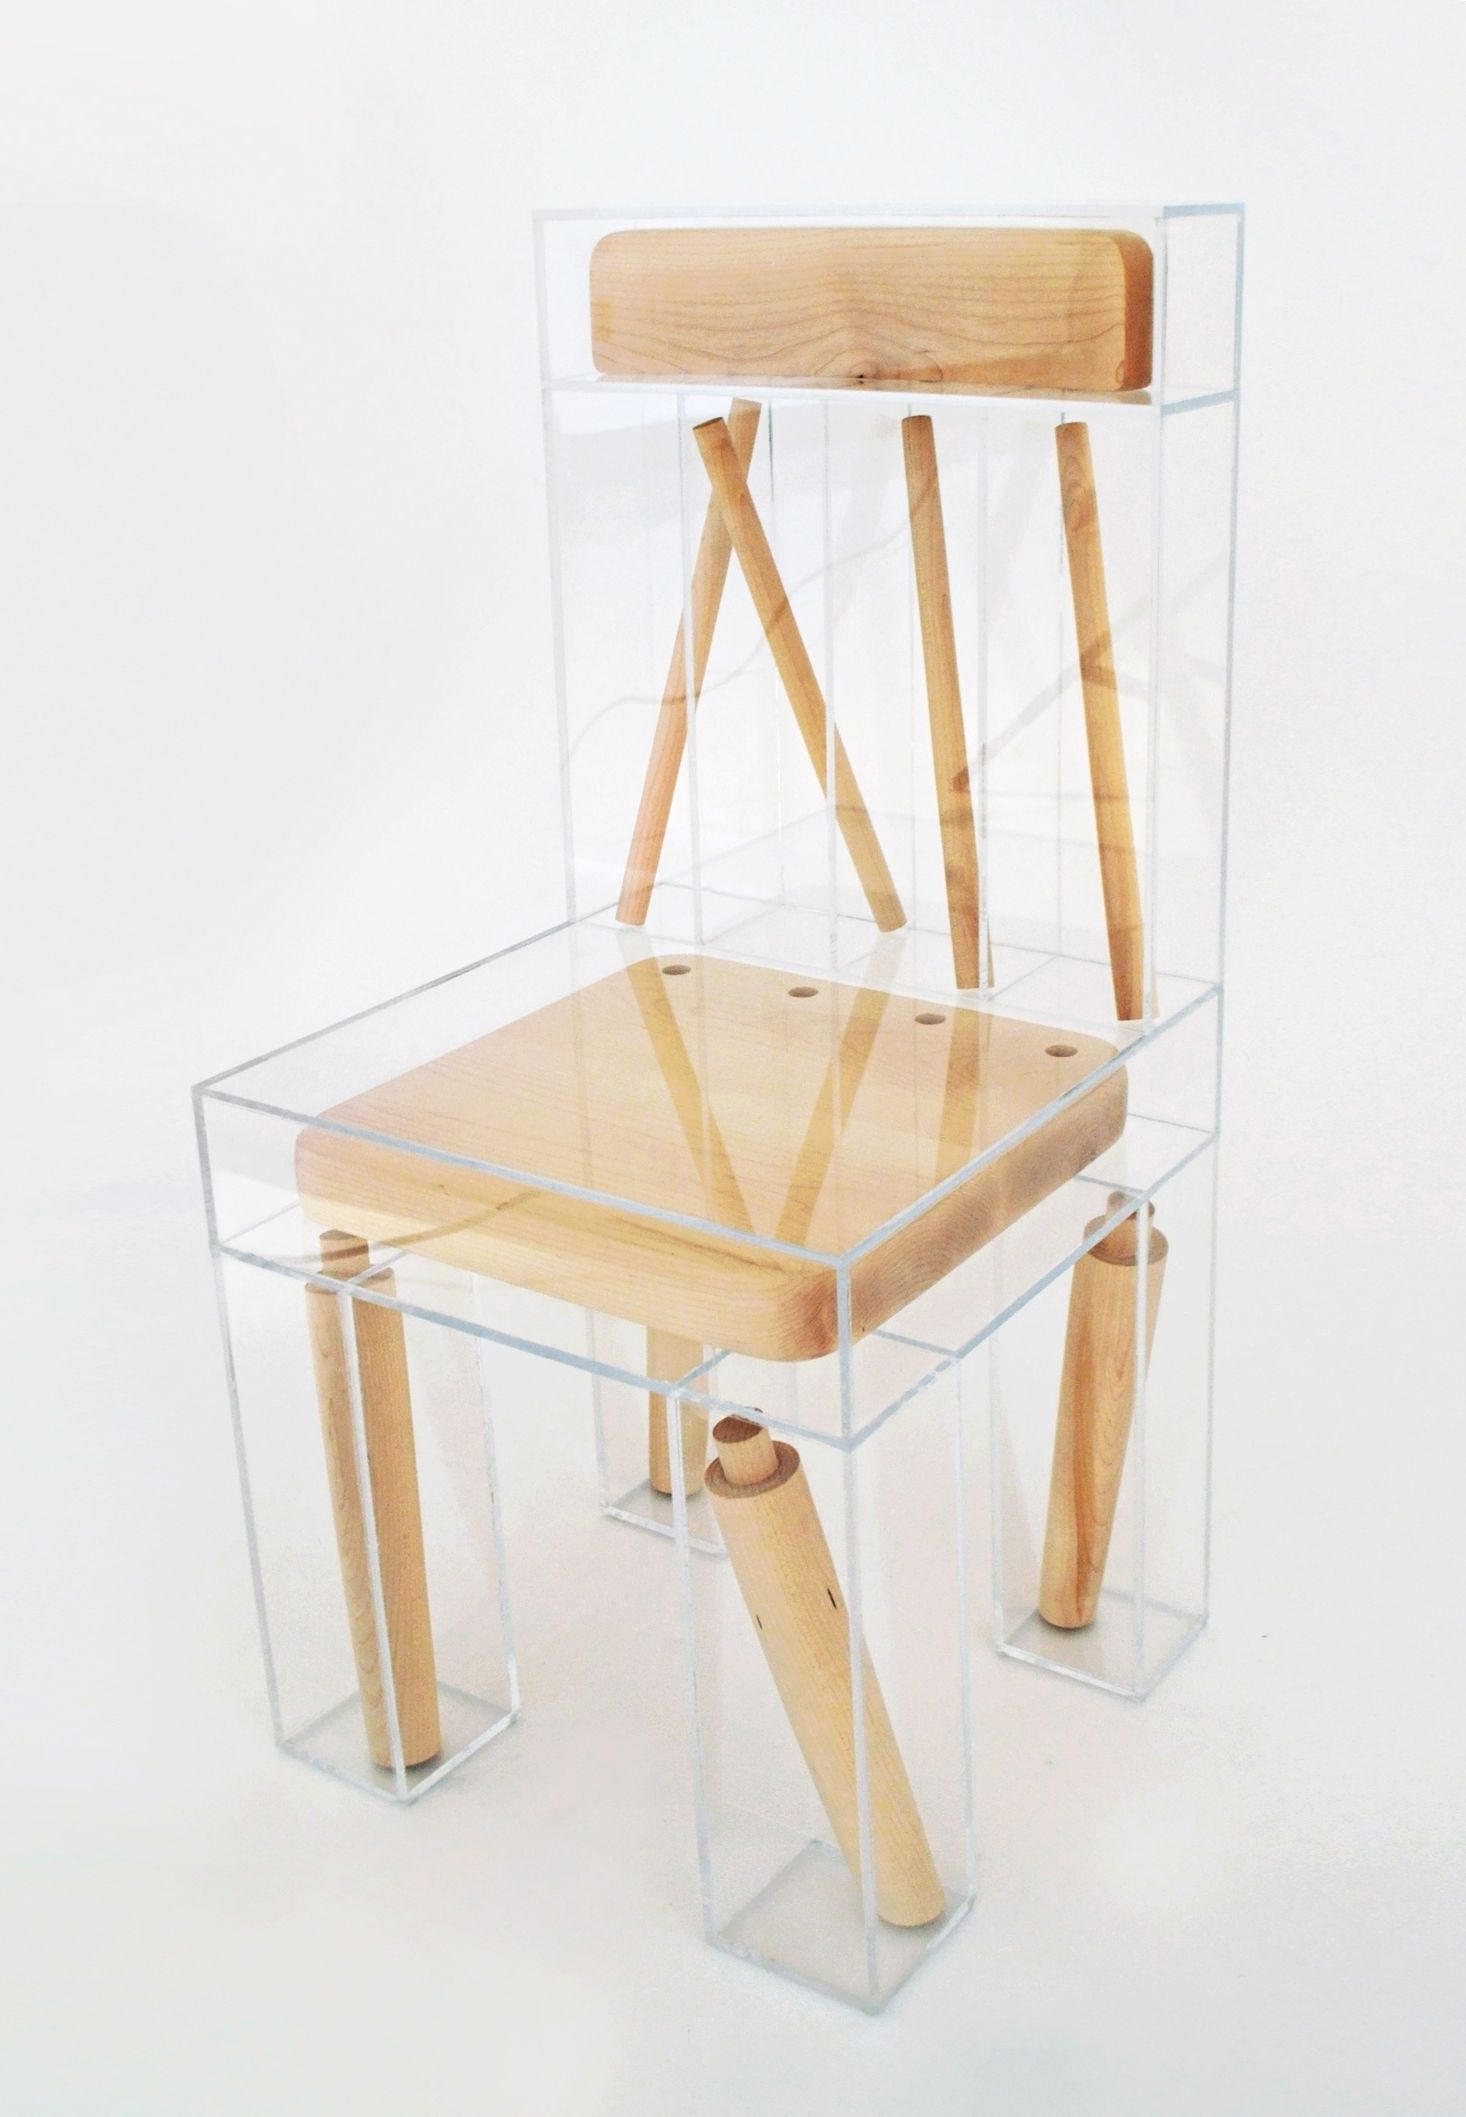 creative images furniture. exploded chair by joyce lin creative productsindustrial designfurniture images furniture 0